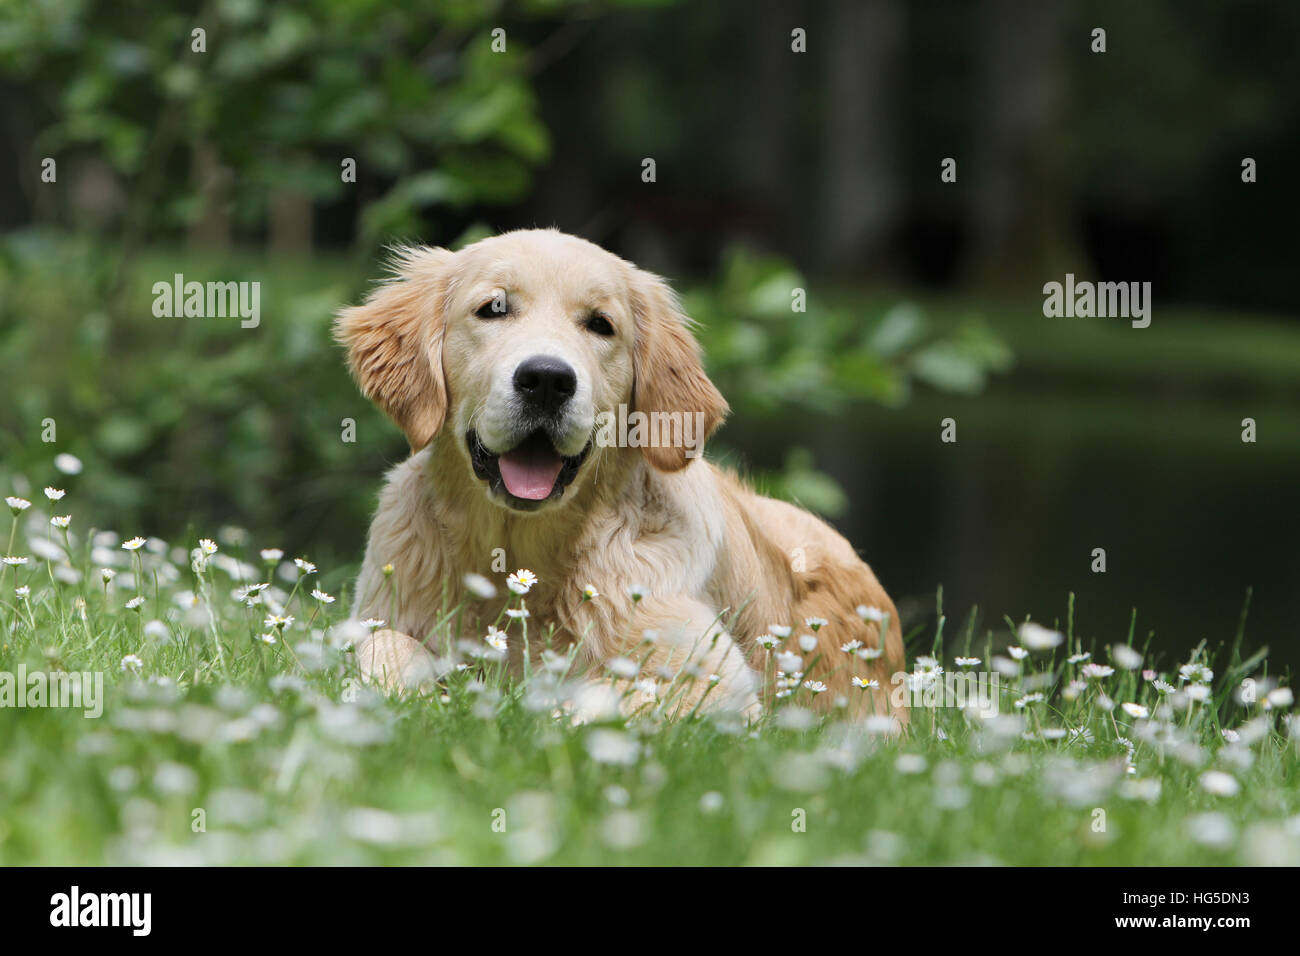 Dog Golden Retriever adult lying in a meadow - Stock Image